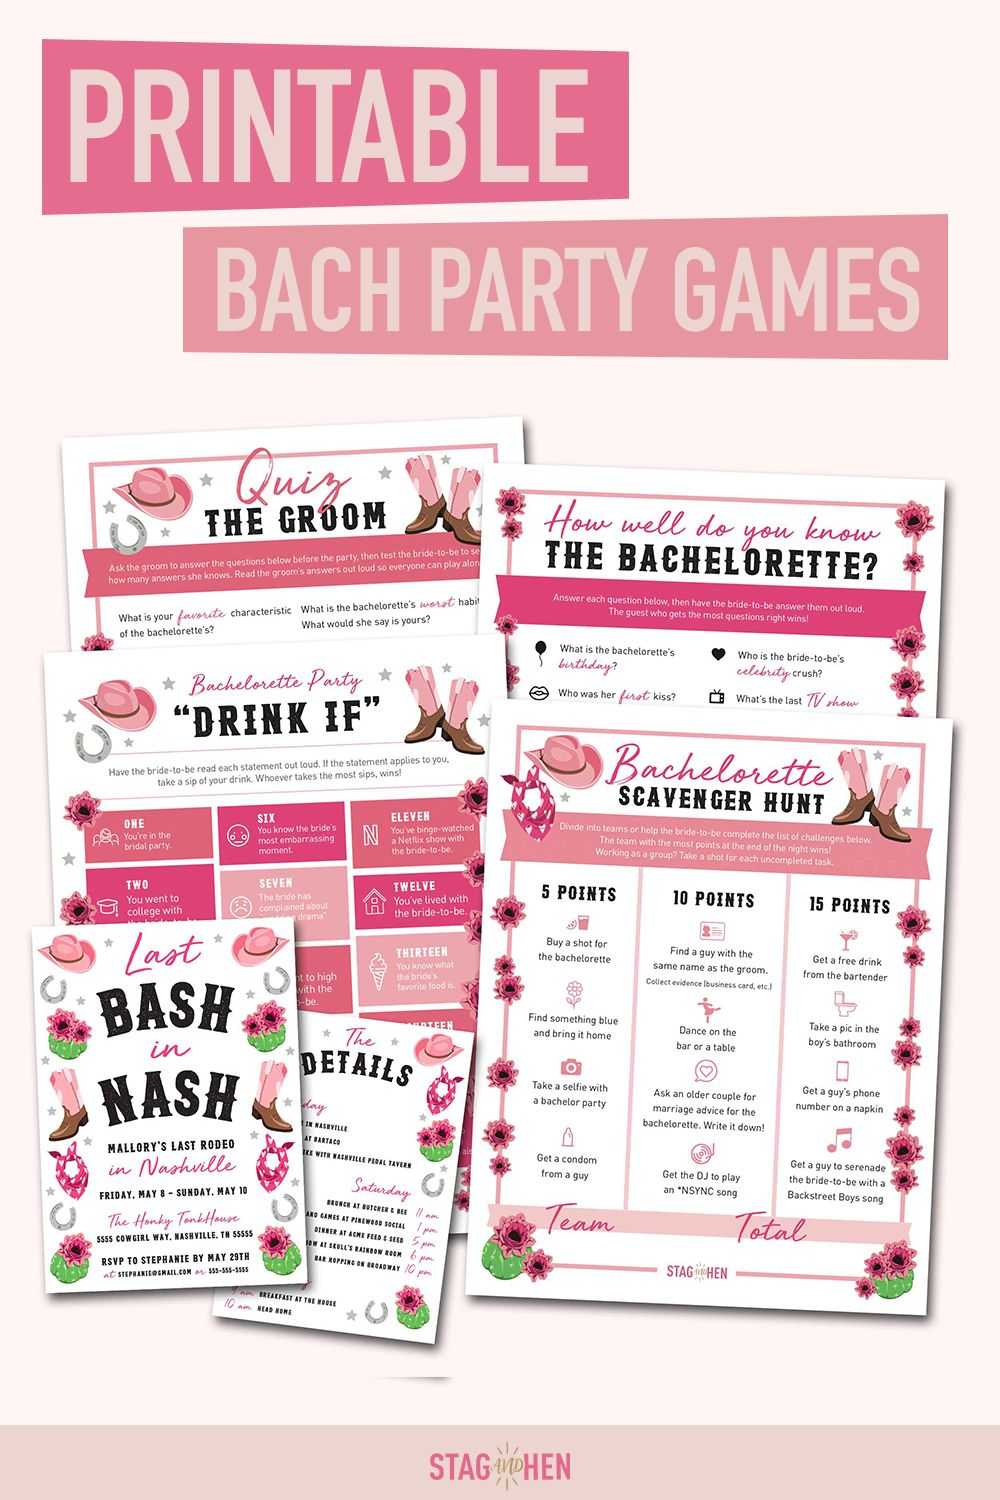 Nashville Bachelorette Party Games Printable PDFs in